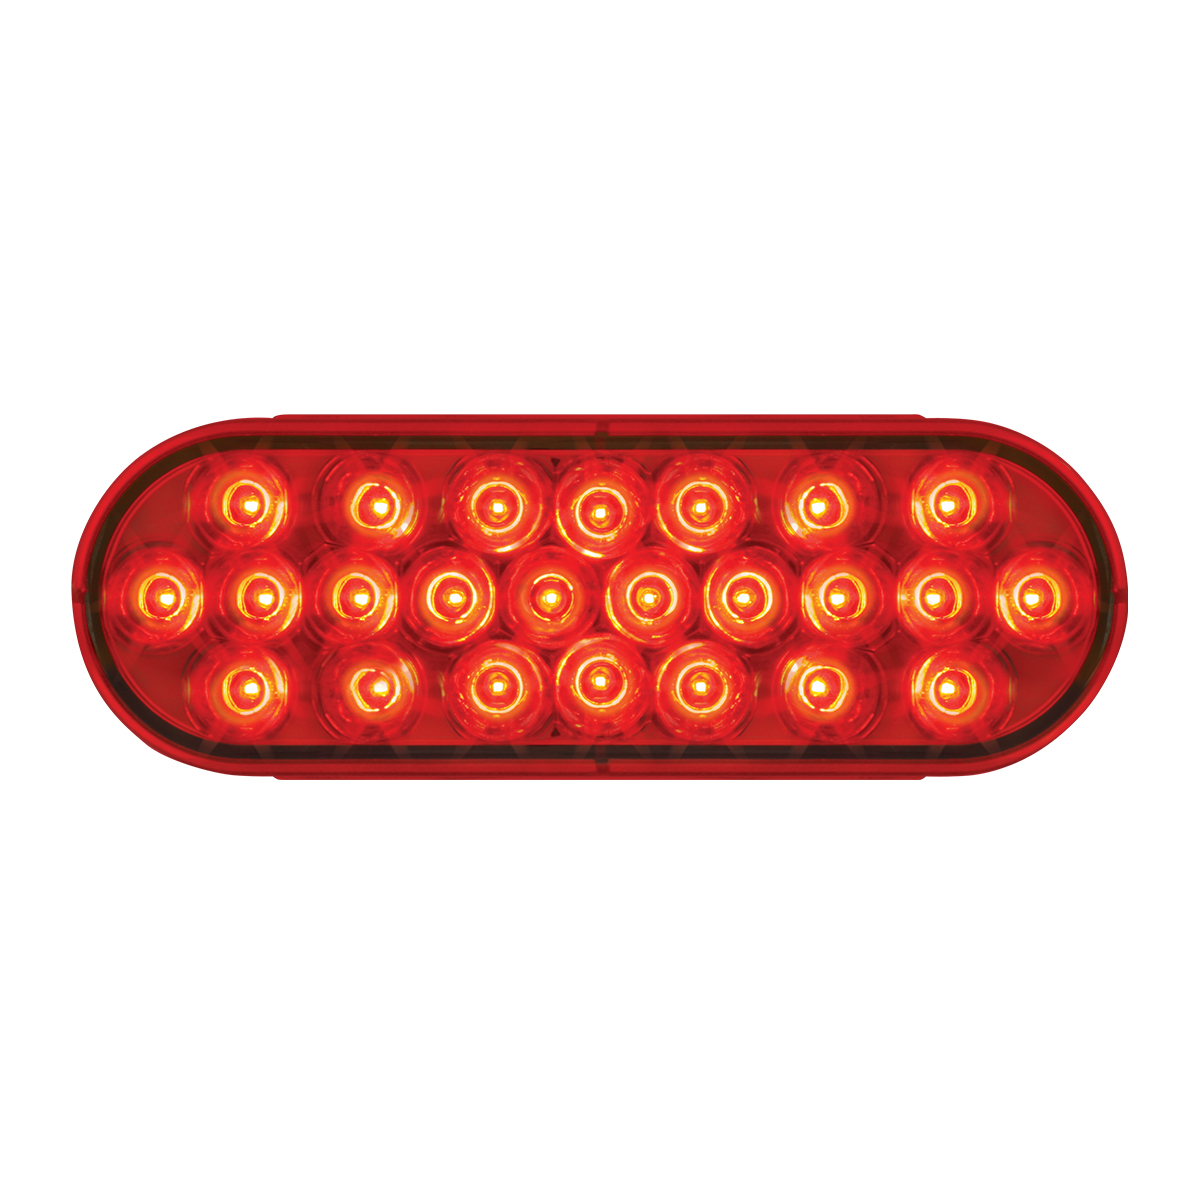 #78233 Oval Sealed Pearl LED Flat Red/Red Light